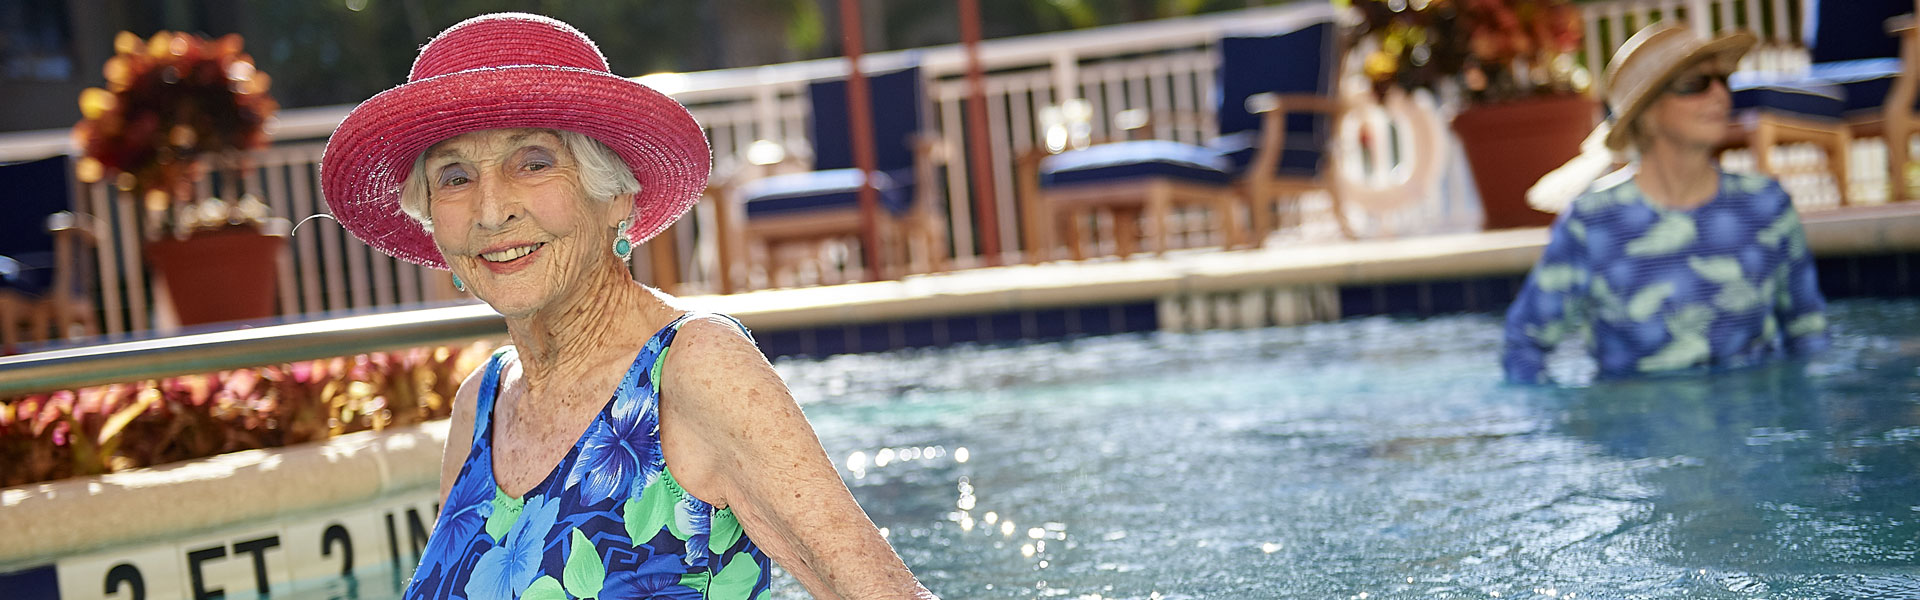 Two elderly women standing in the outdoor pool of their retirement community